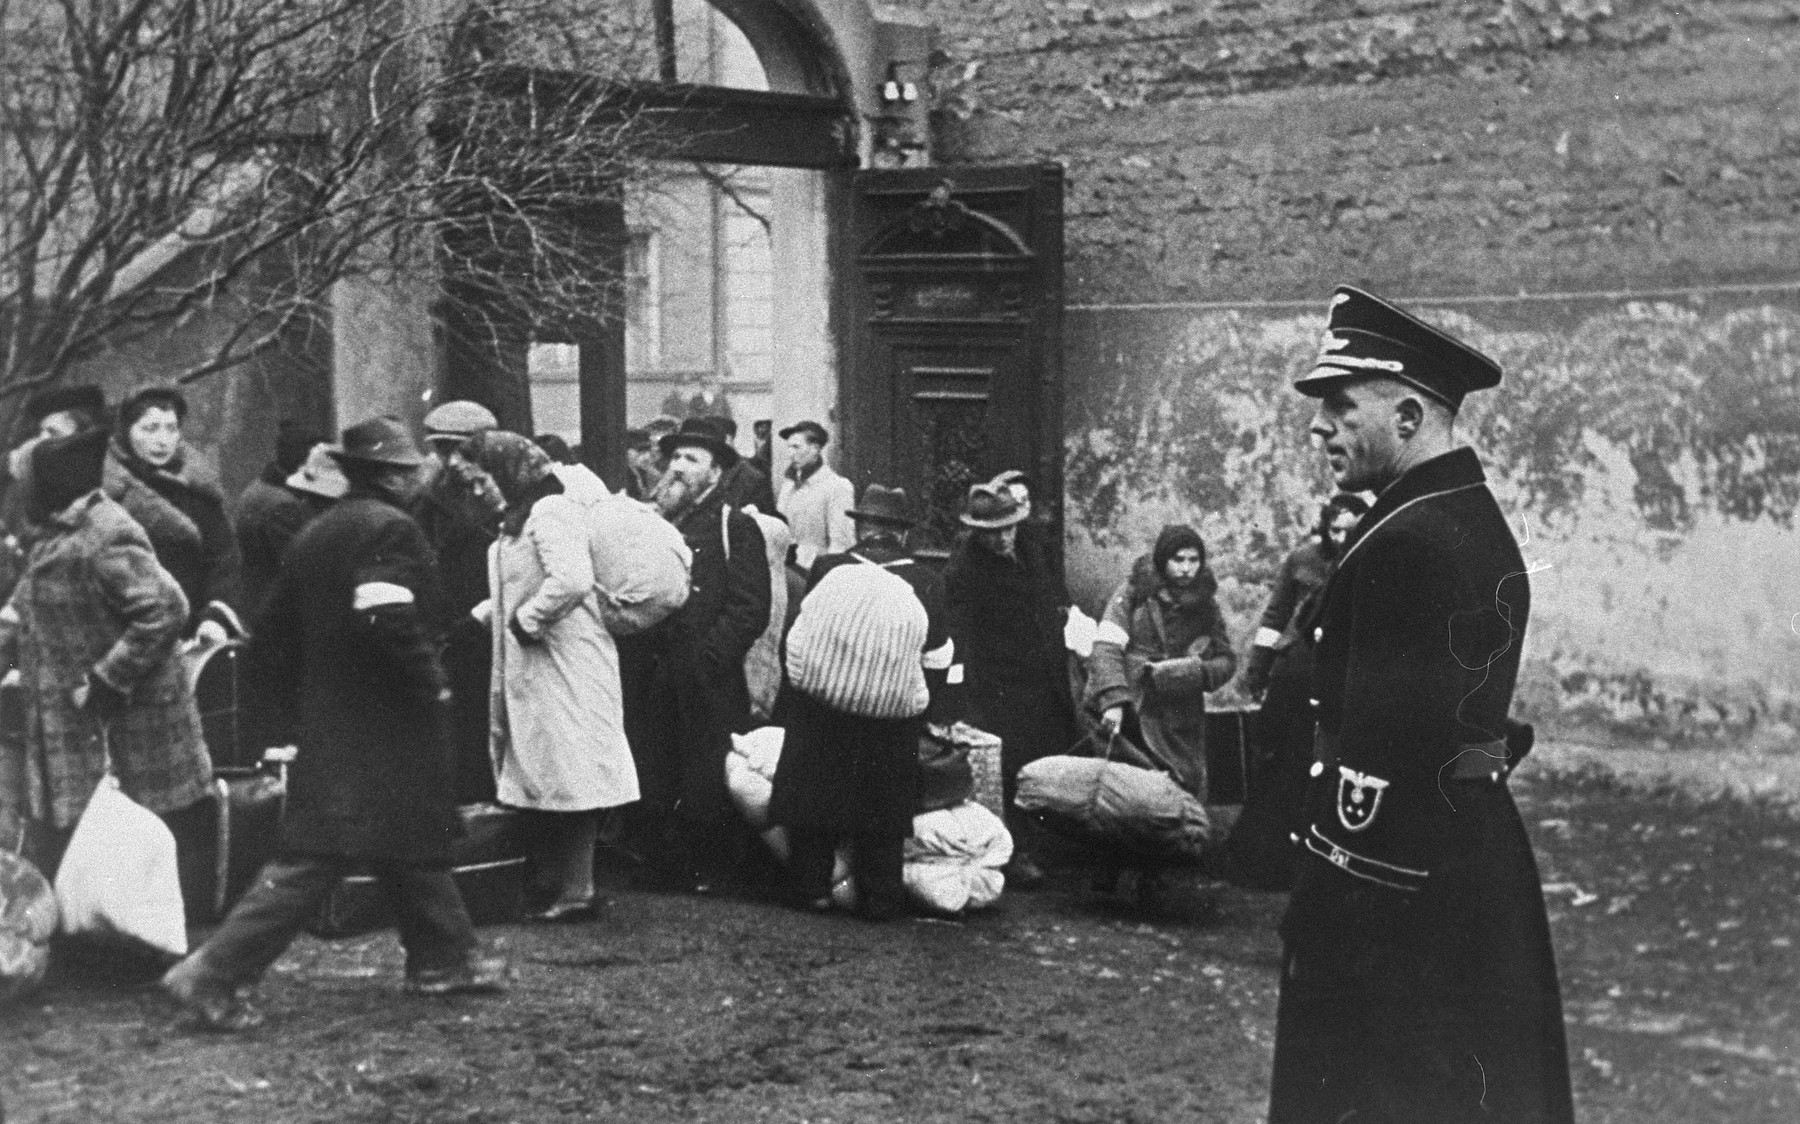 A German official supervises a deportation action in the Krakow ghetto.  Jews, assembled in a courtyard with their bundles, await further instructions.